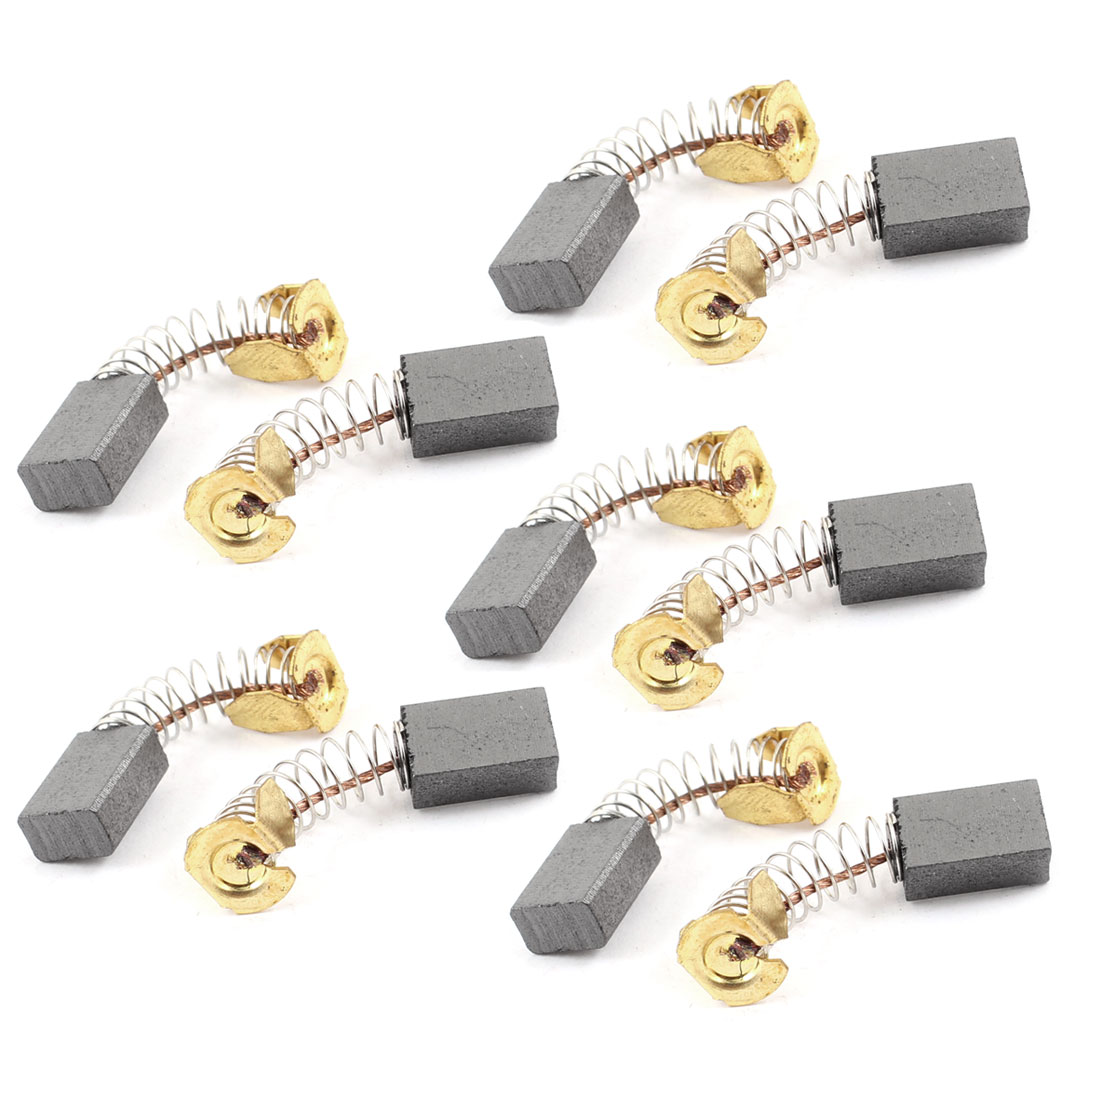 10 Pcs Power Tool Replacement 12mm x 8mm x 5mm Motor Carbon Brushes